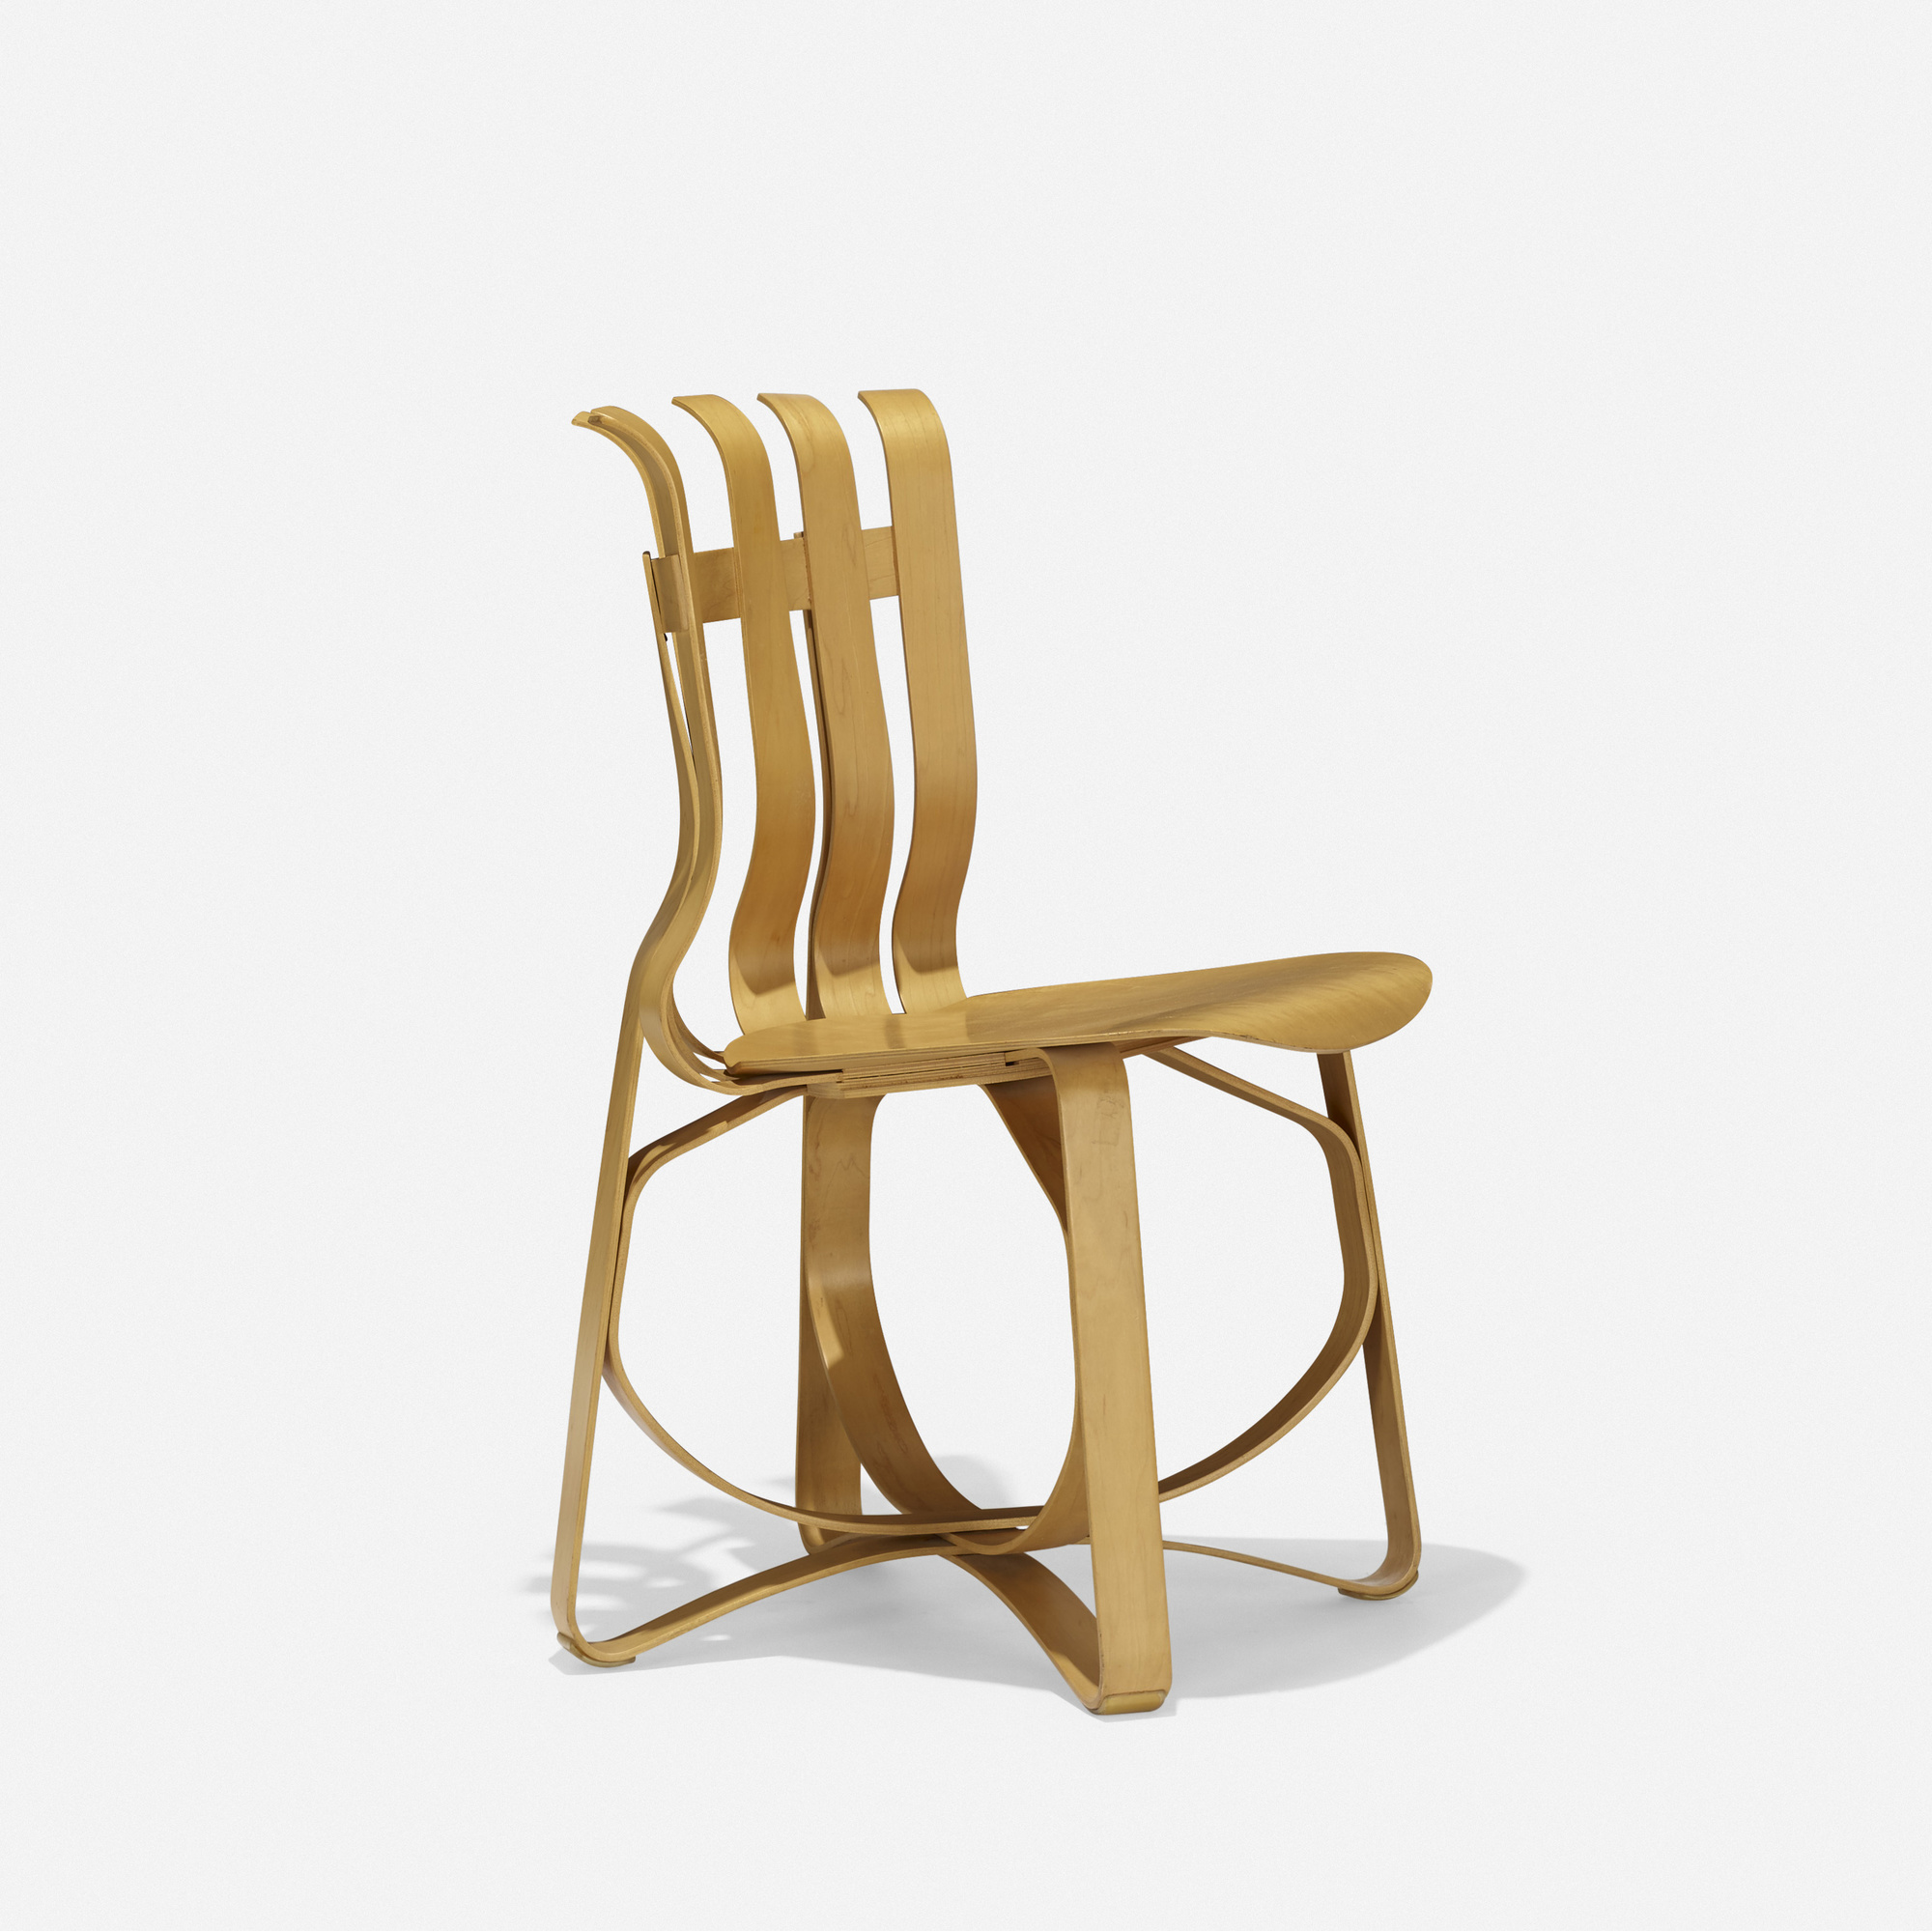 116: Frank Gehry / Hat Trick chair (2 of 4)